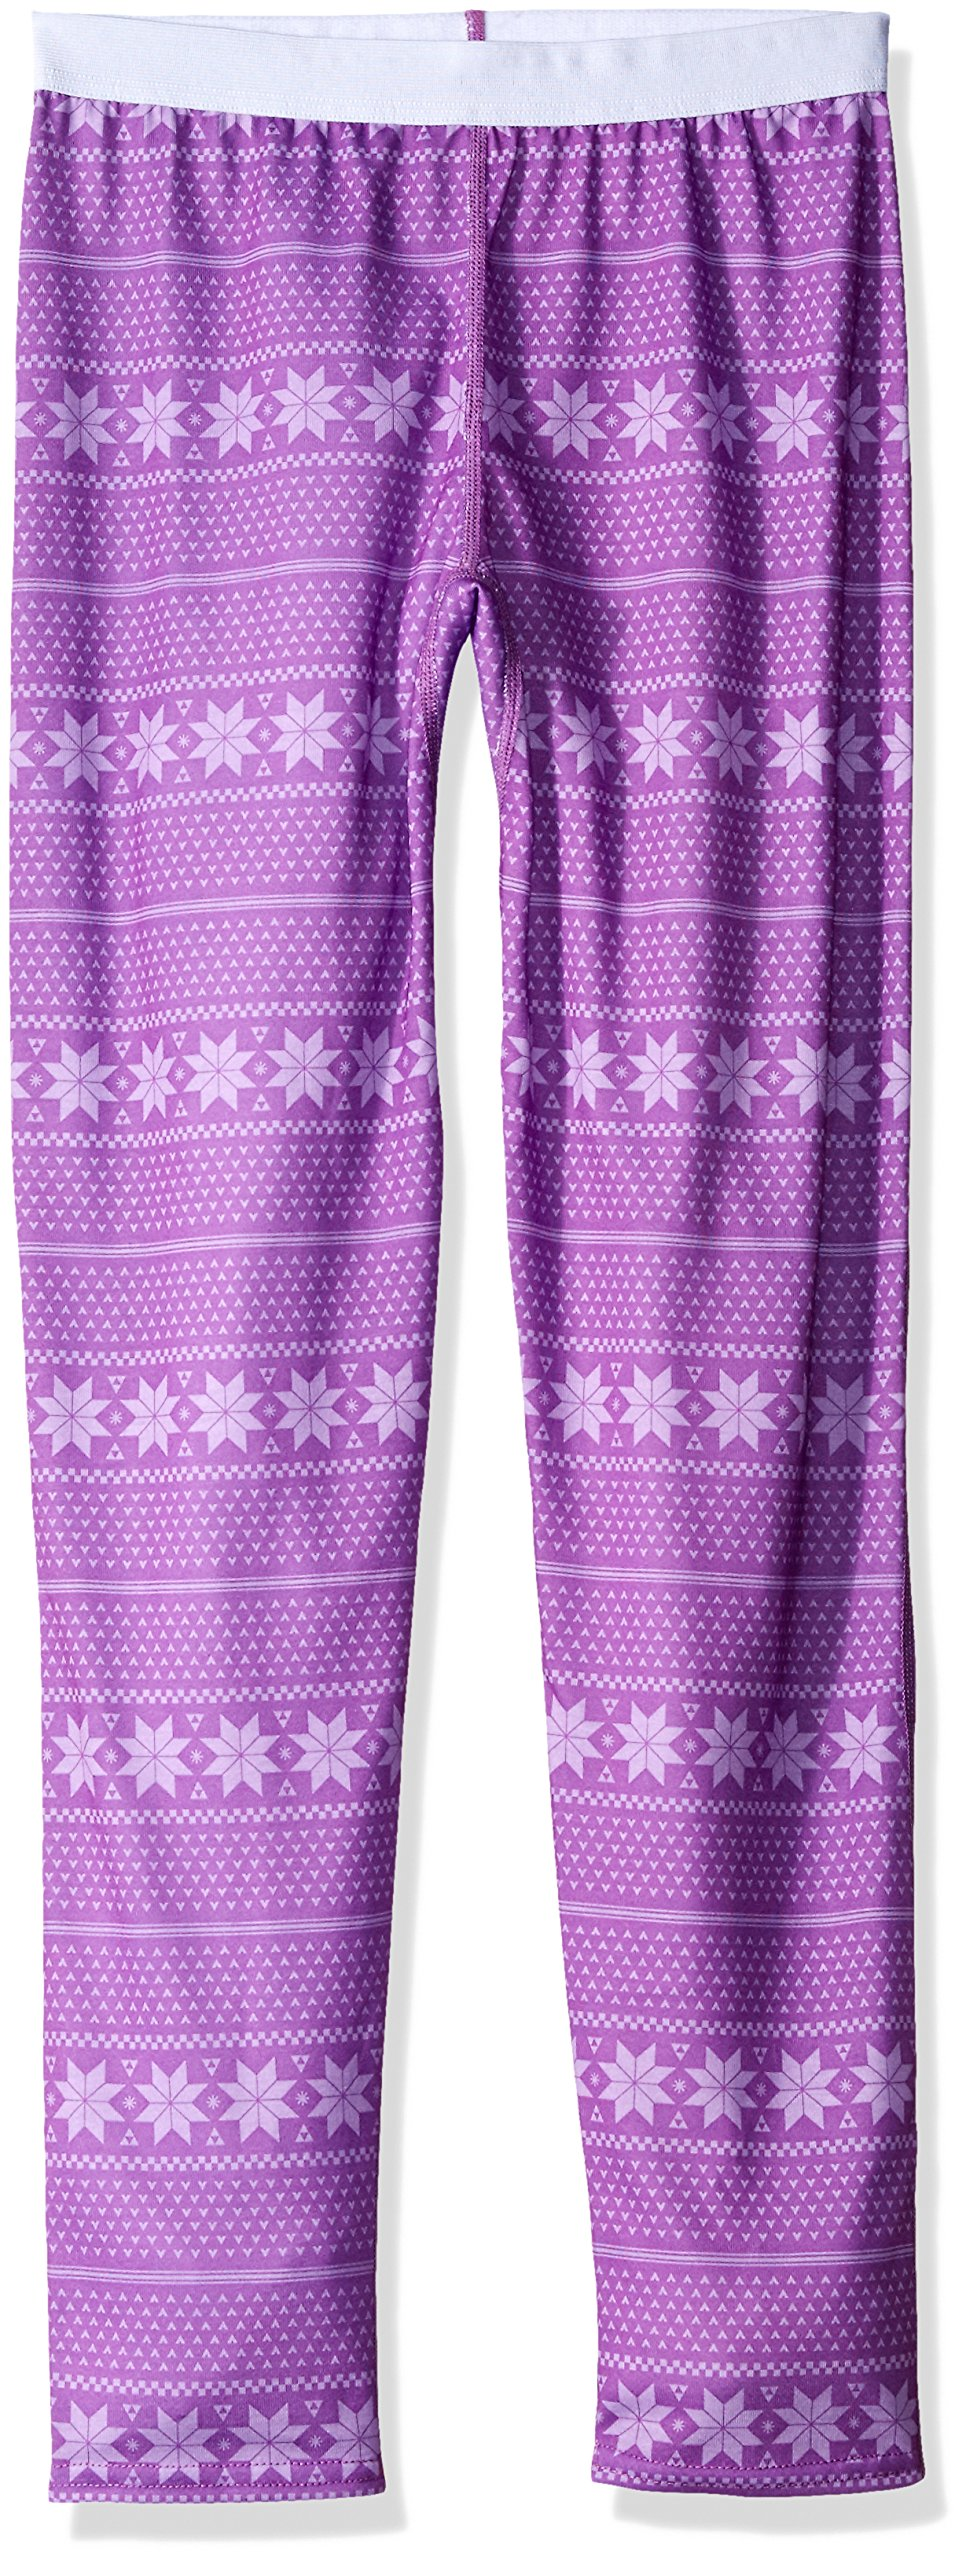 Hot Chillys Youth Pepper Skins Print Bottom, Alpine Stripe/April, Large by Hot Chillys